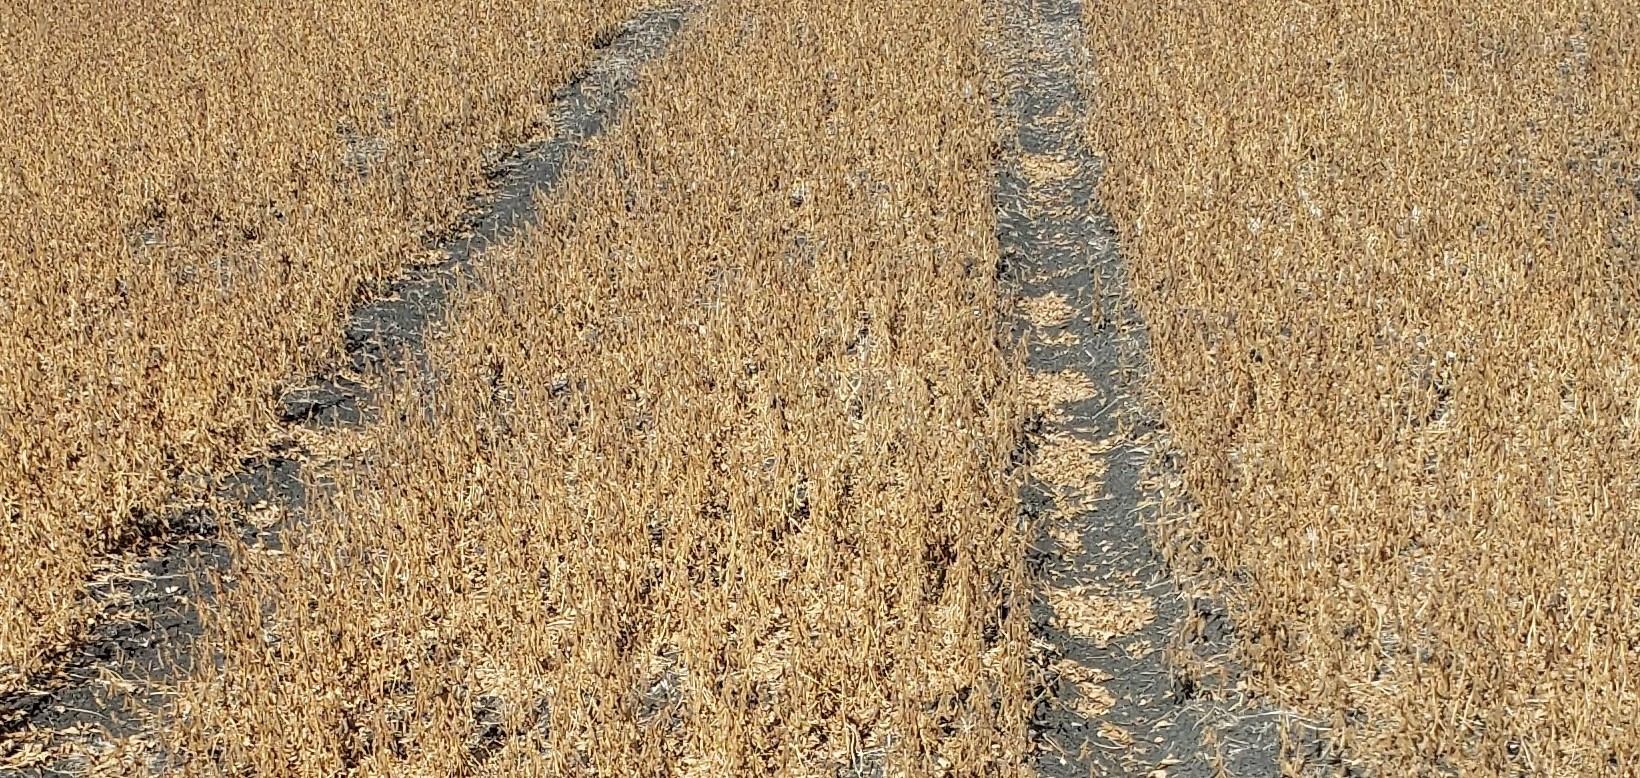 Yield Loss From Tire Tracks